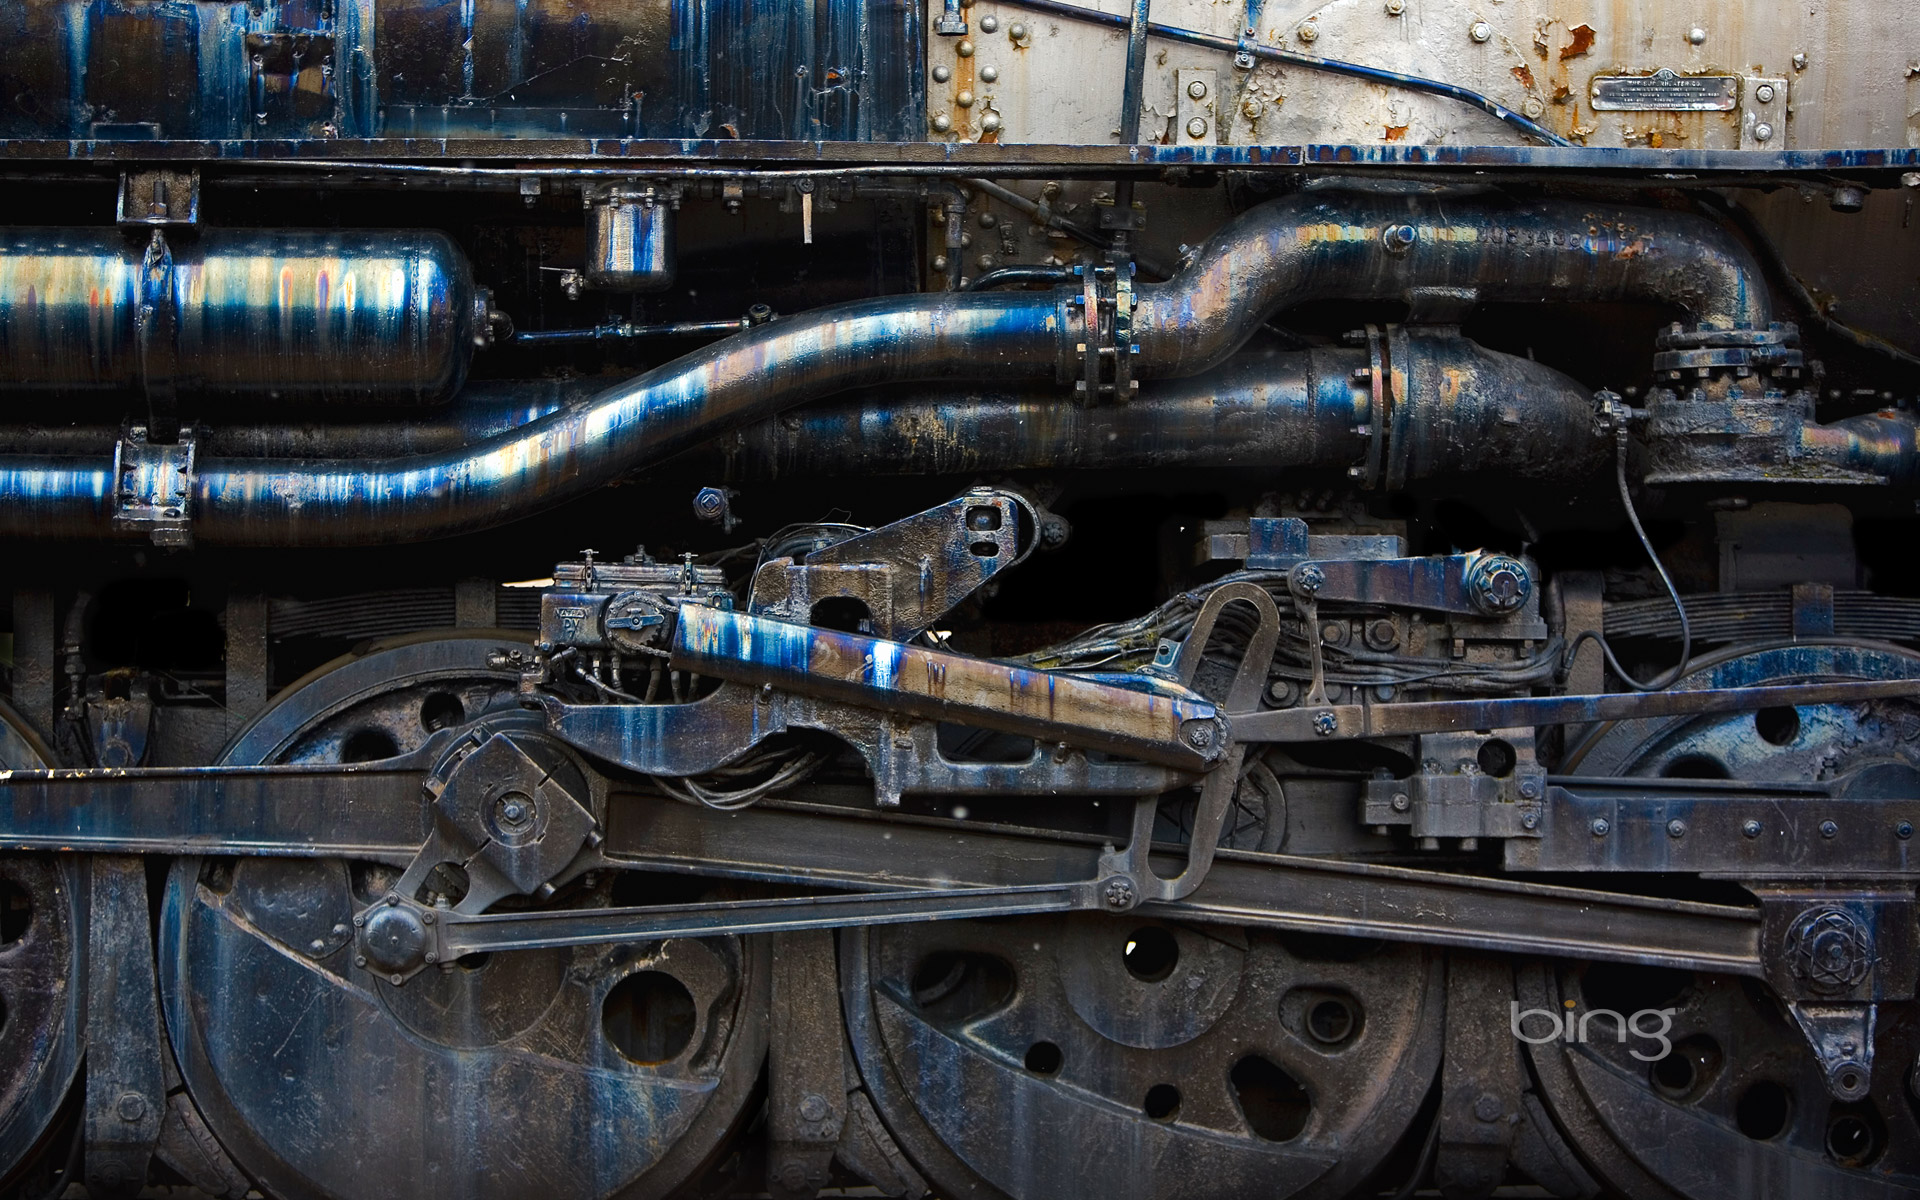 Detail of a steam engine at Steamtown National Historic Site, Scranton, Pennsylvania